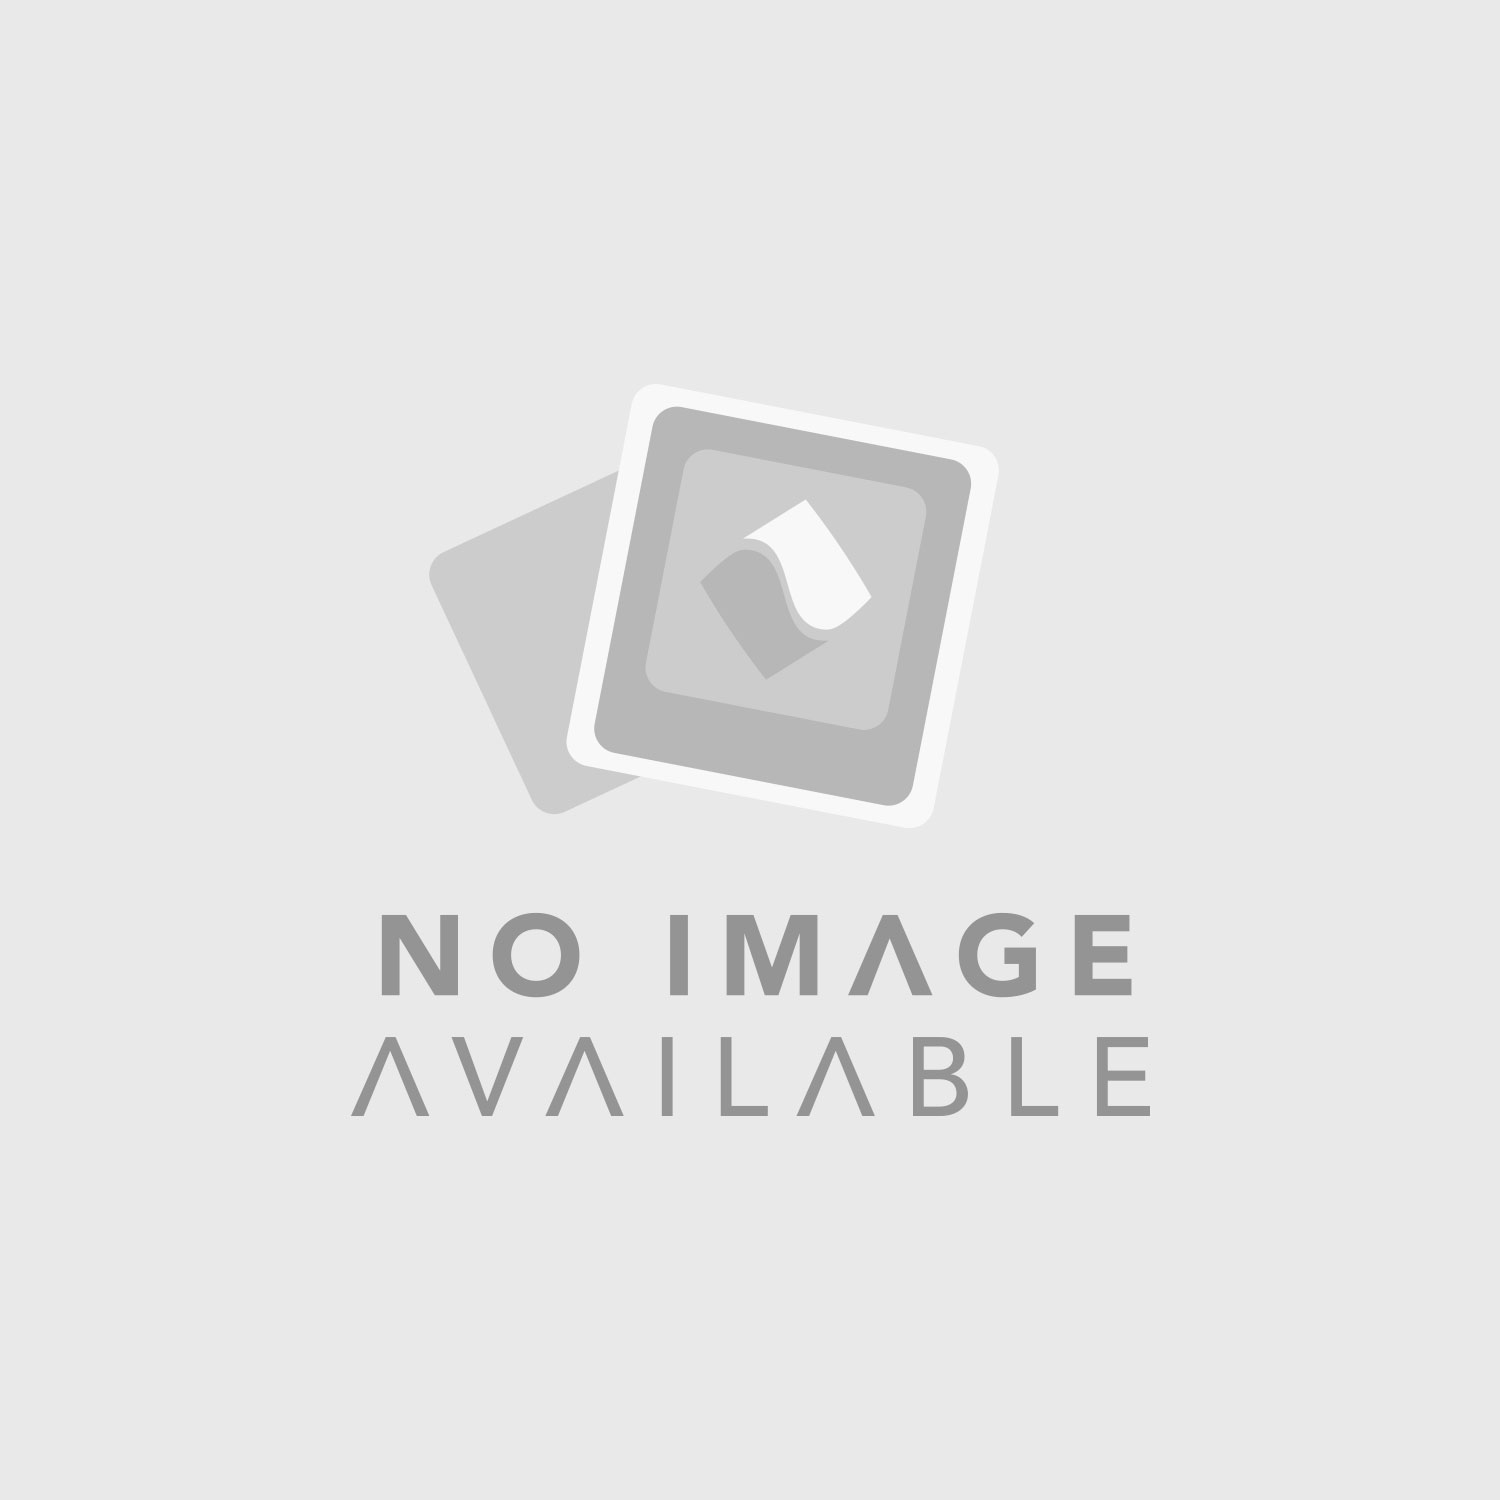 Neutrik 103M Single Gang Wallplate with Male XLR